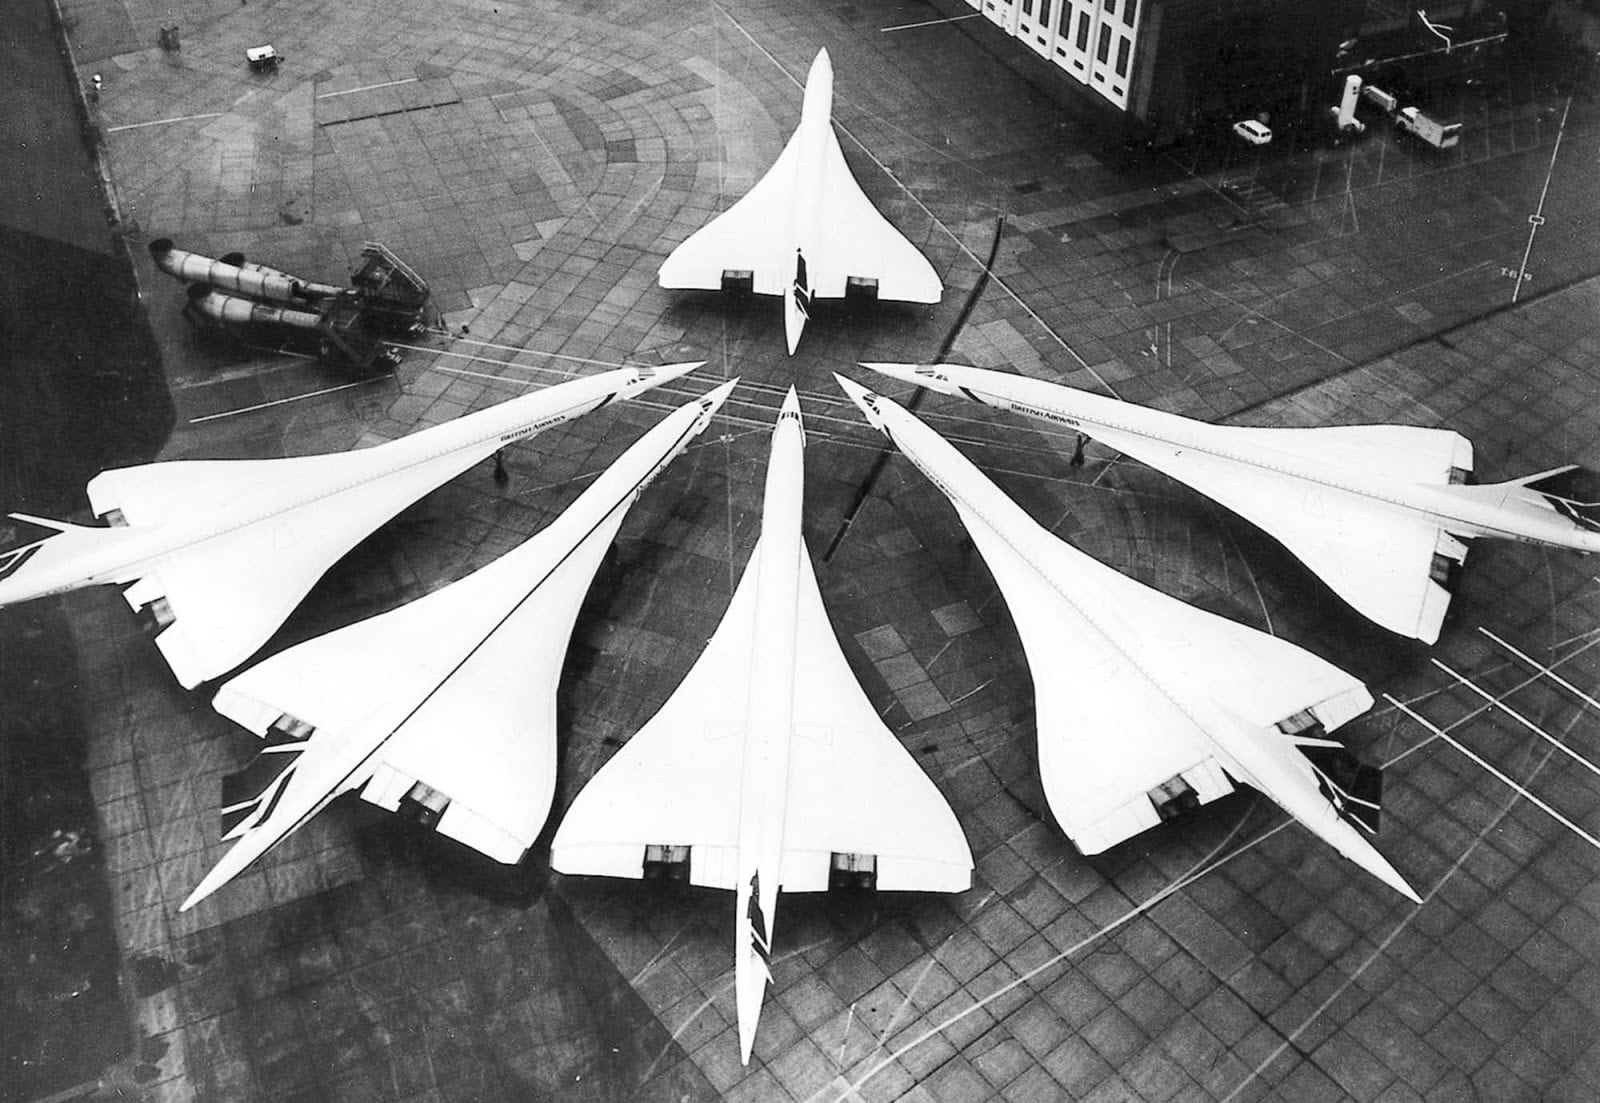 The British Concorde fleet at London Heathrow Airport, January 21, 1986. The occasion was the 10-year anniversary of British Concorde flight service, which began in 1976.